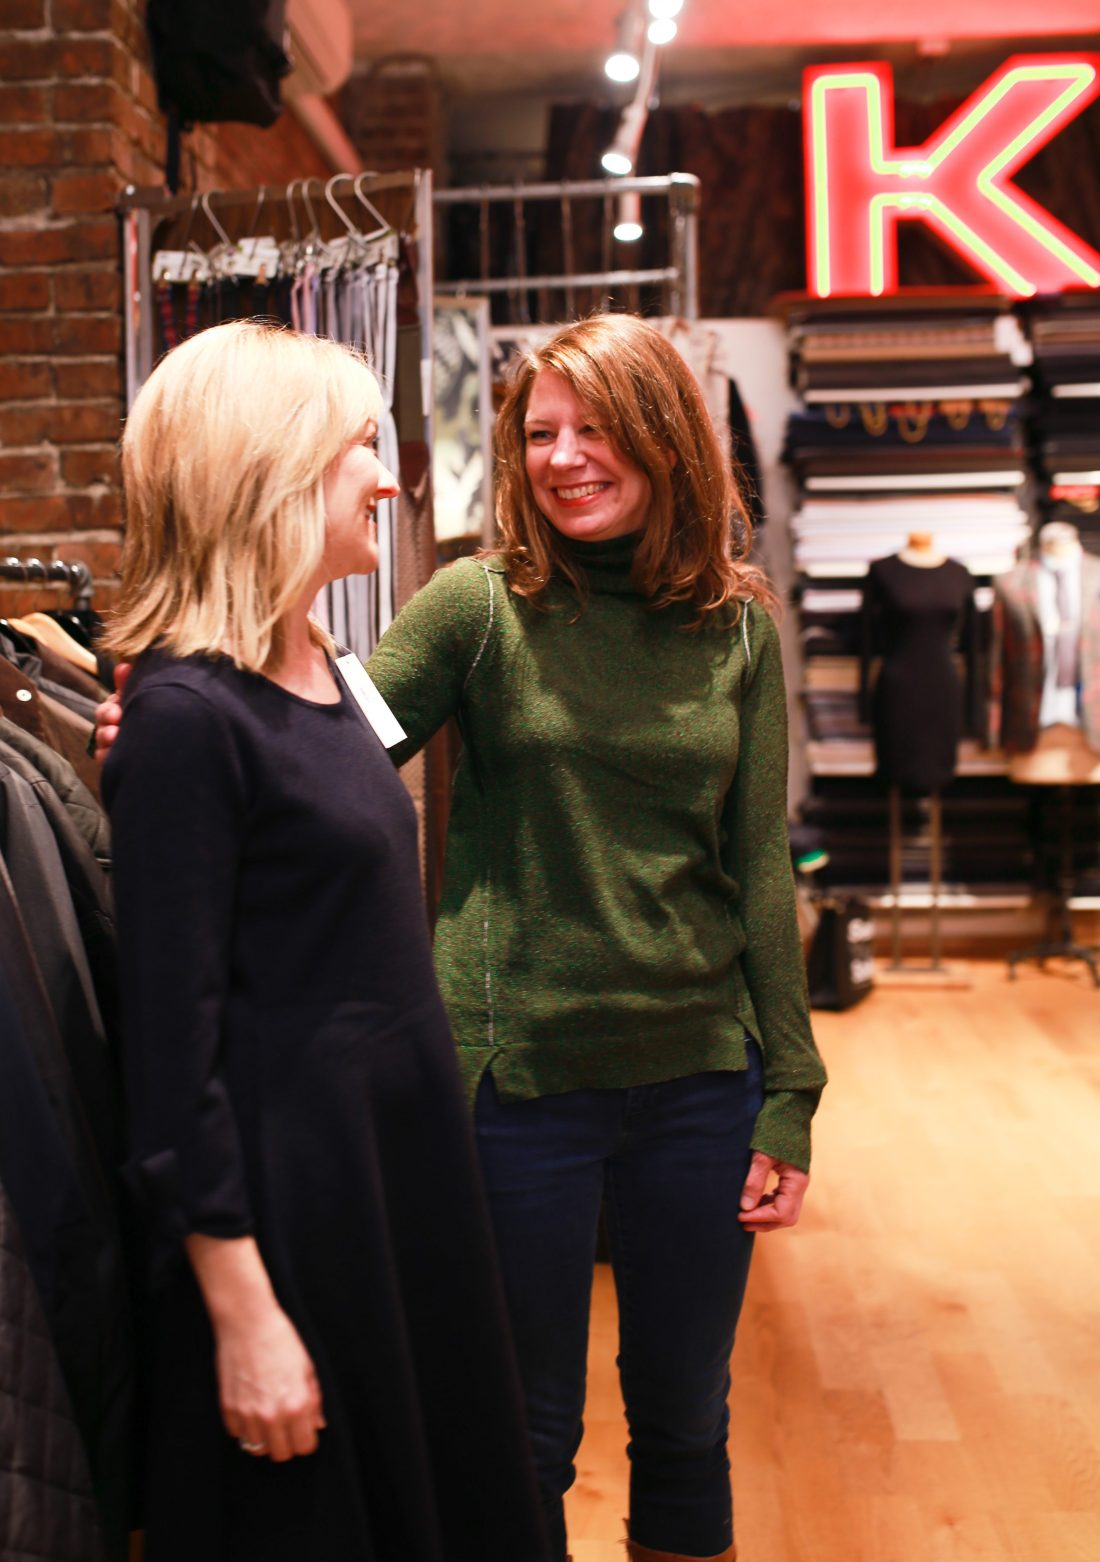 Sharing a giggle in a sweater dress and green sweater outfit at Kuhlman in Seattle.